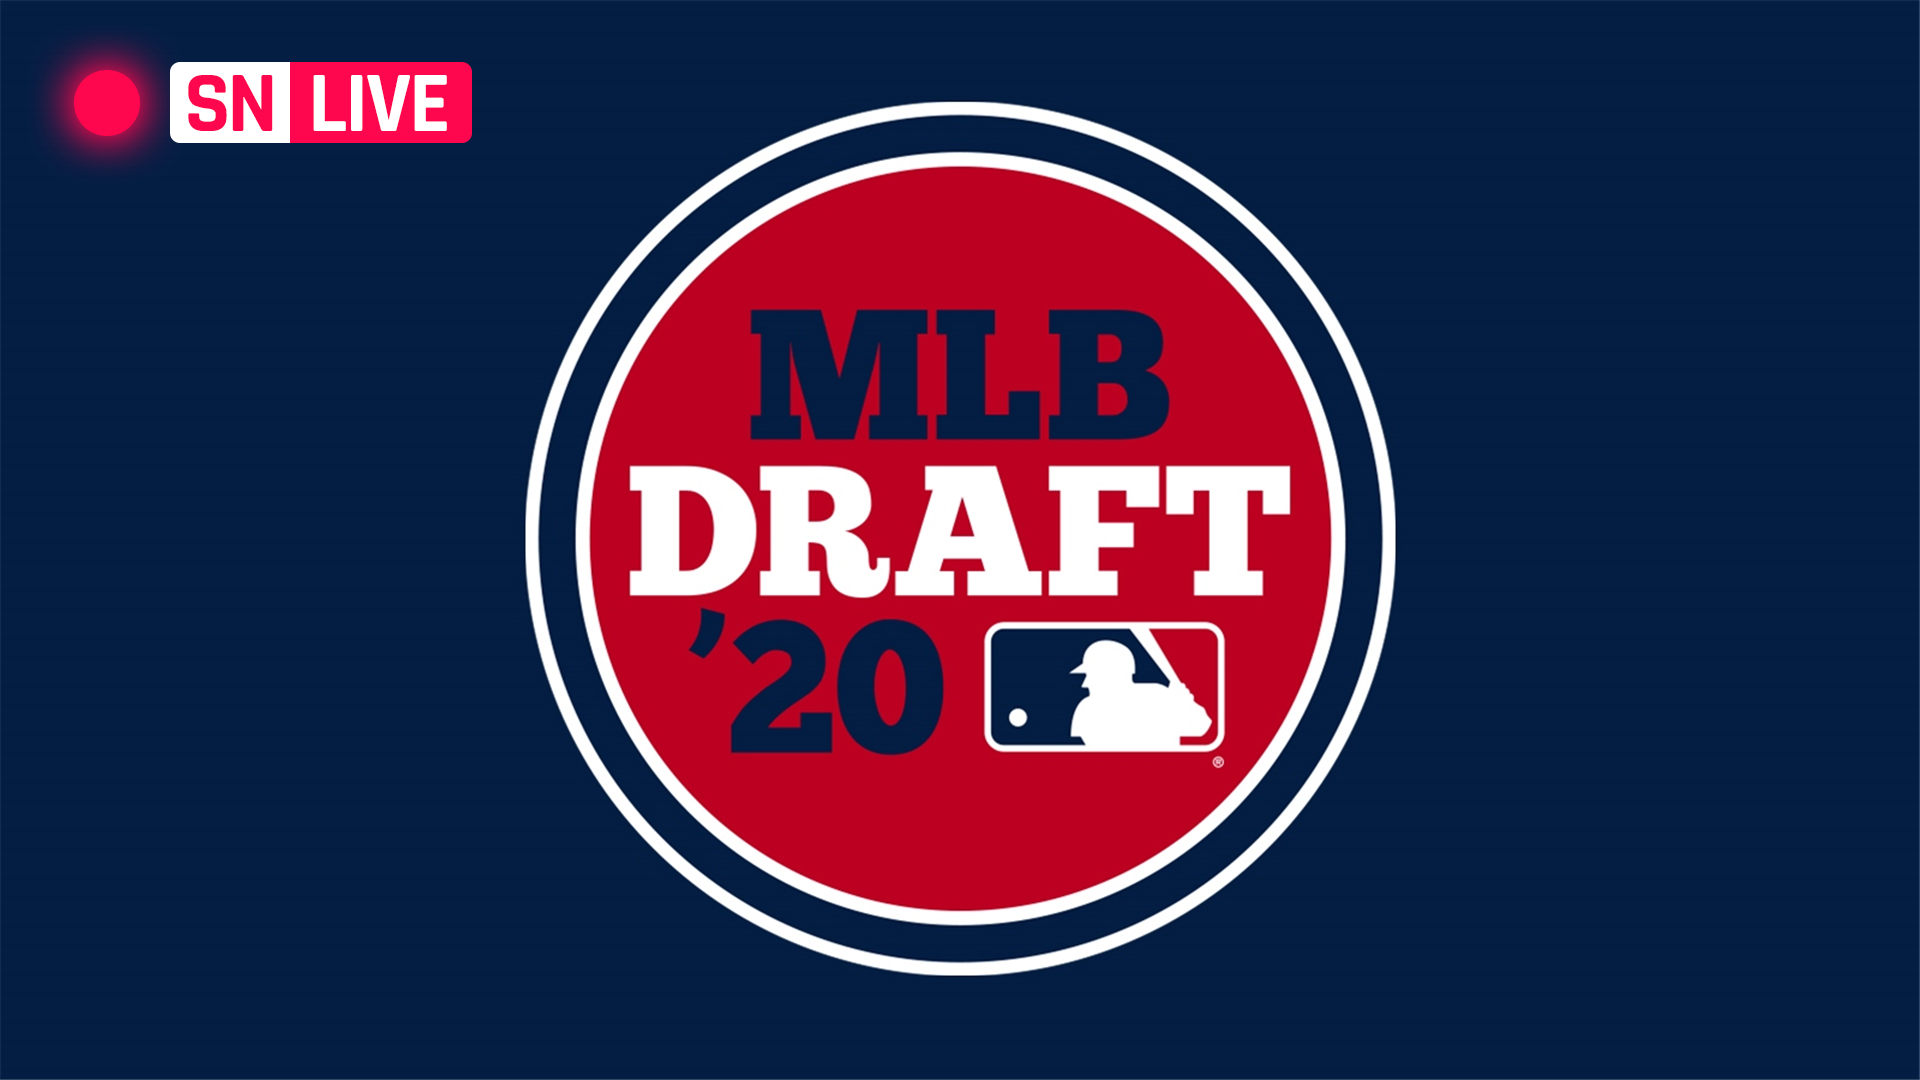 Mlb Draft Tracker 2020 Live Results Complete Picks List For Rounds 1 5 In Baseball Draft The Show Must Go On In 2020 Mlb Professional Baseball Philadelphia Phillies